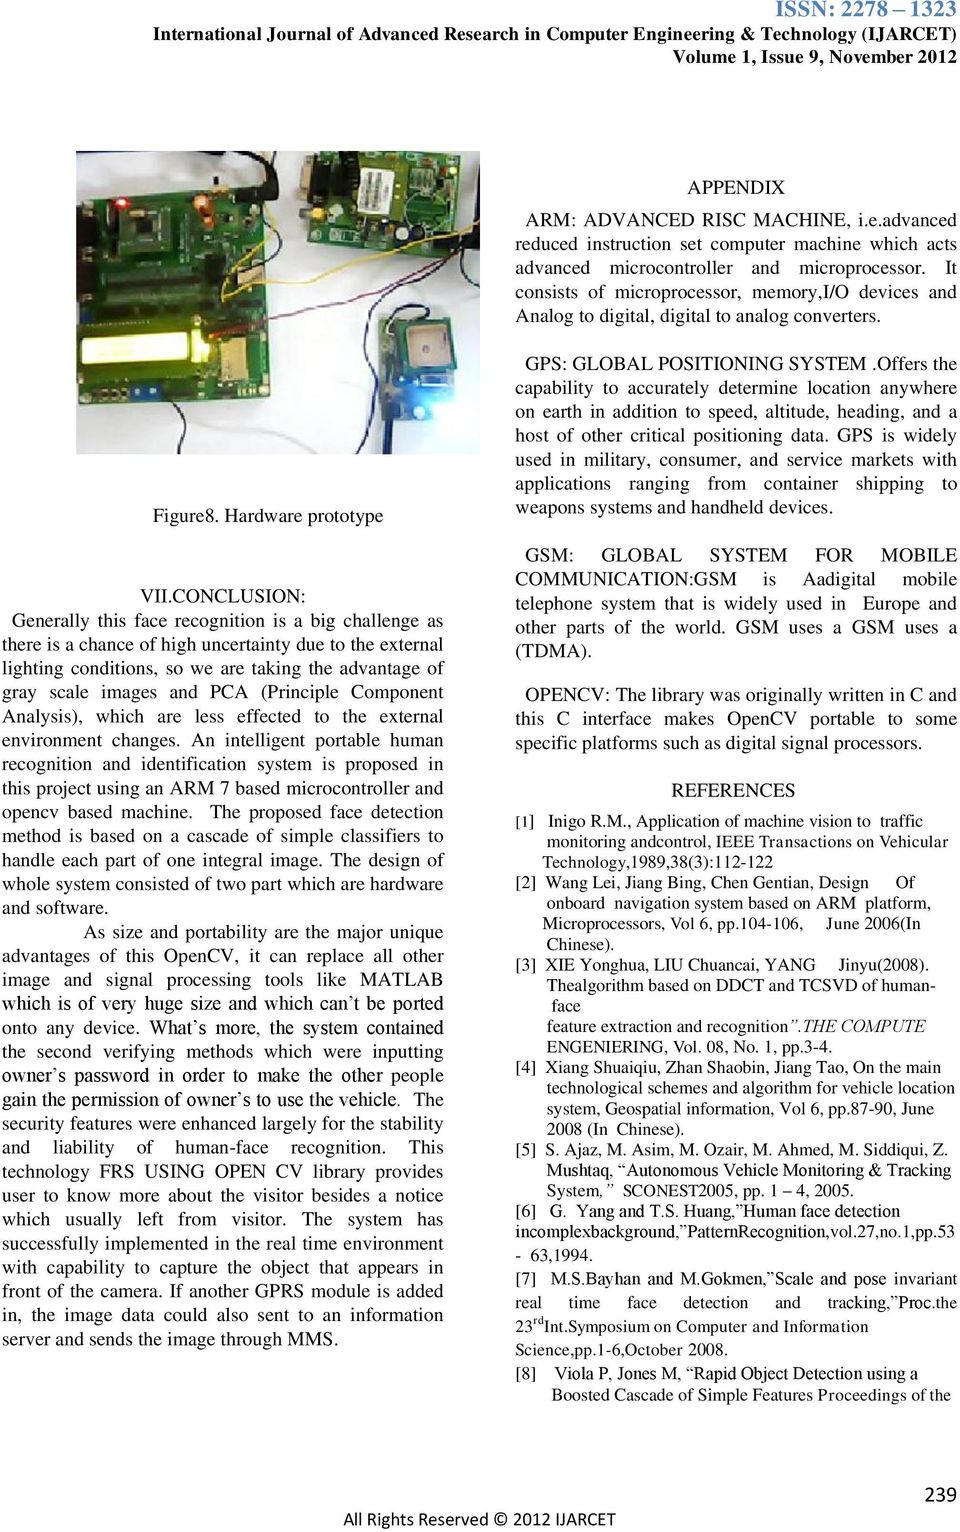 Design Of ARM Based Face Recognition System using Open CV Library - PDF